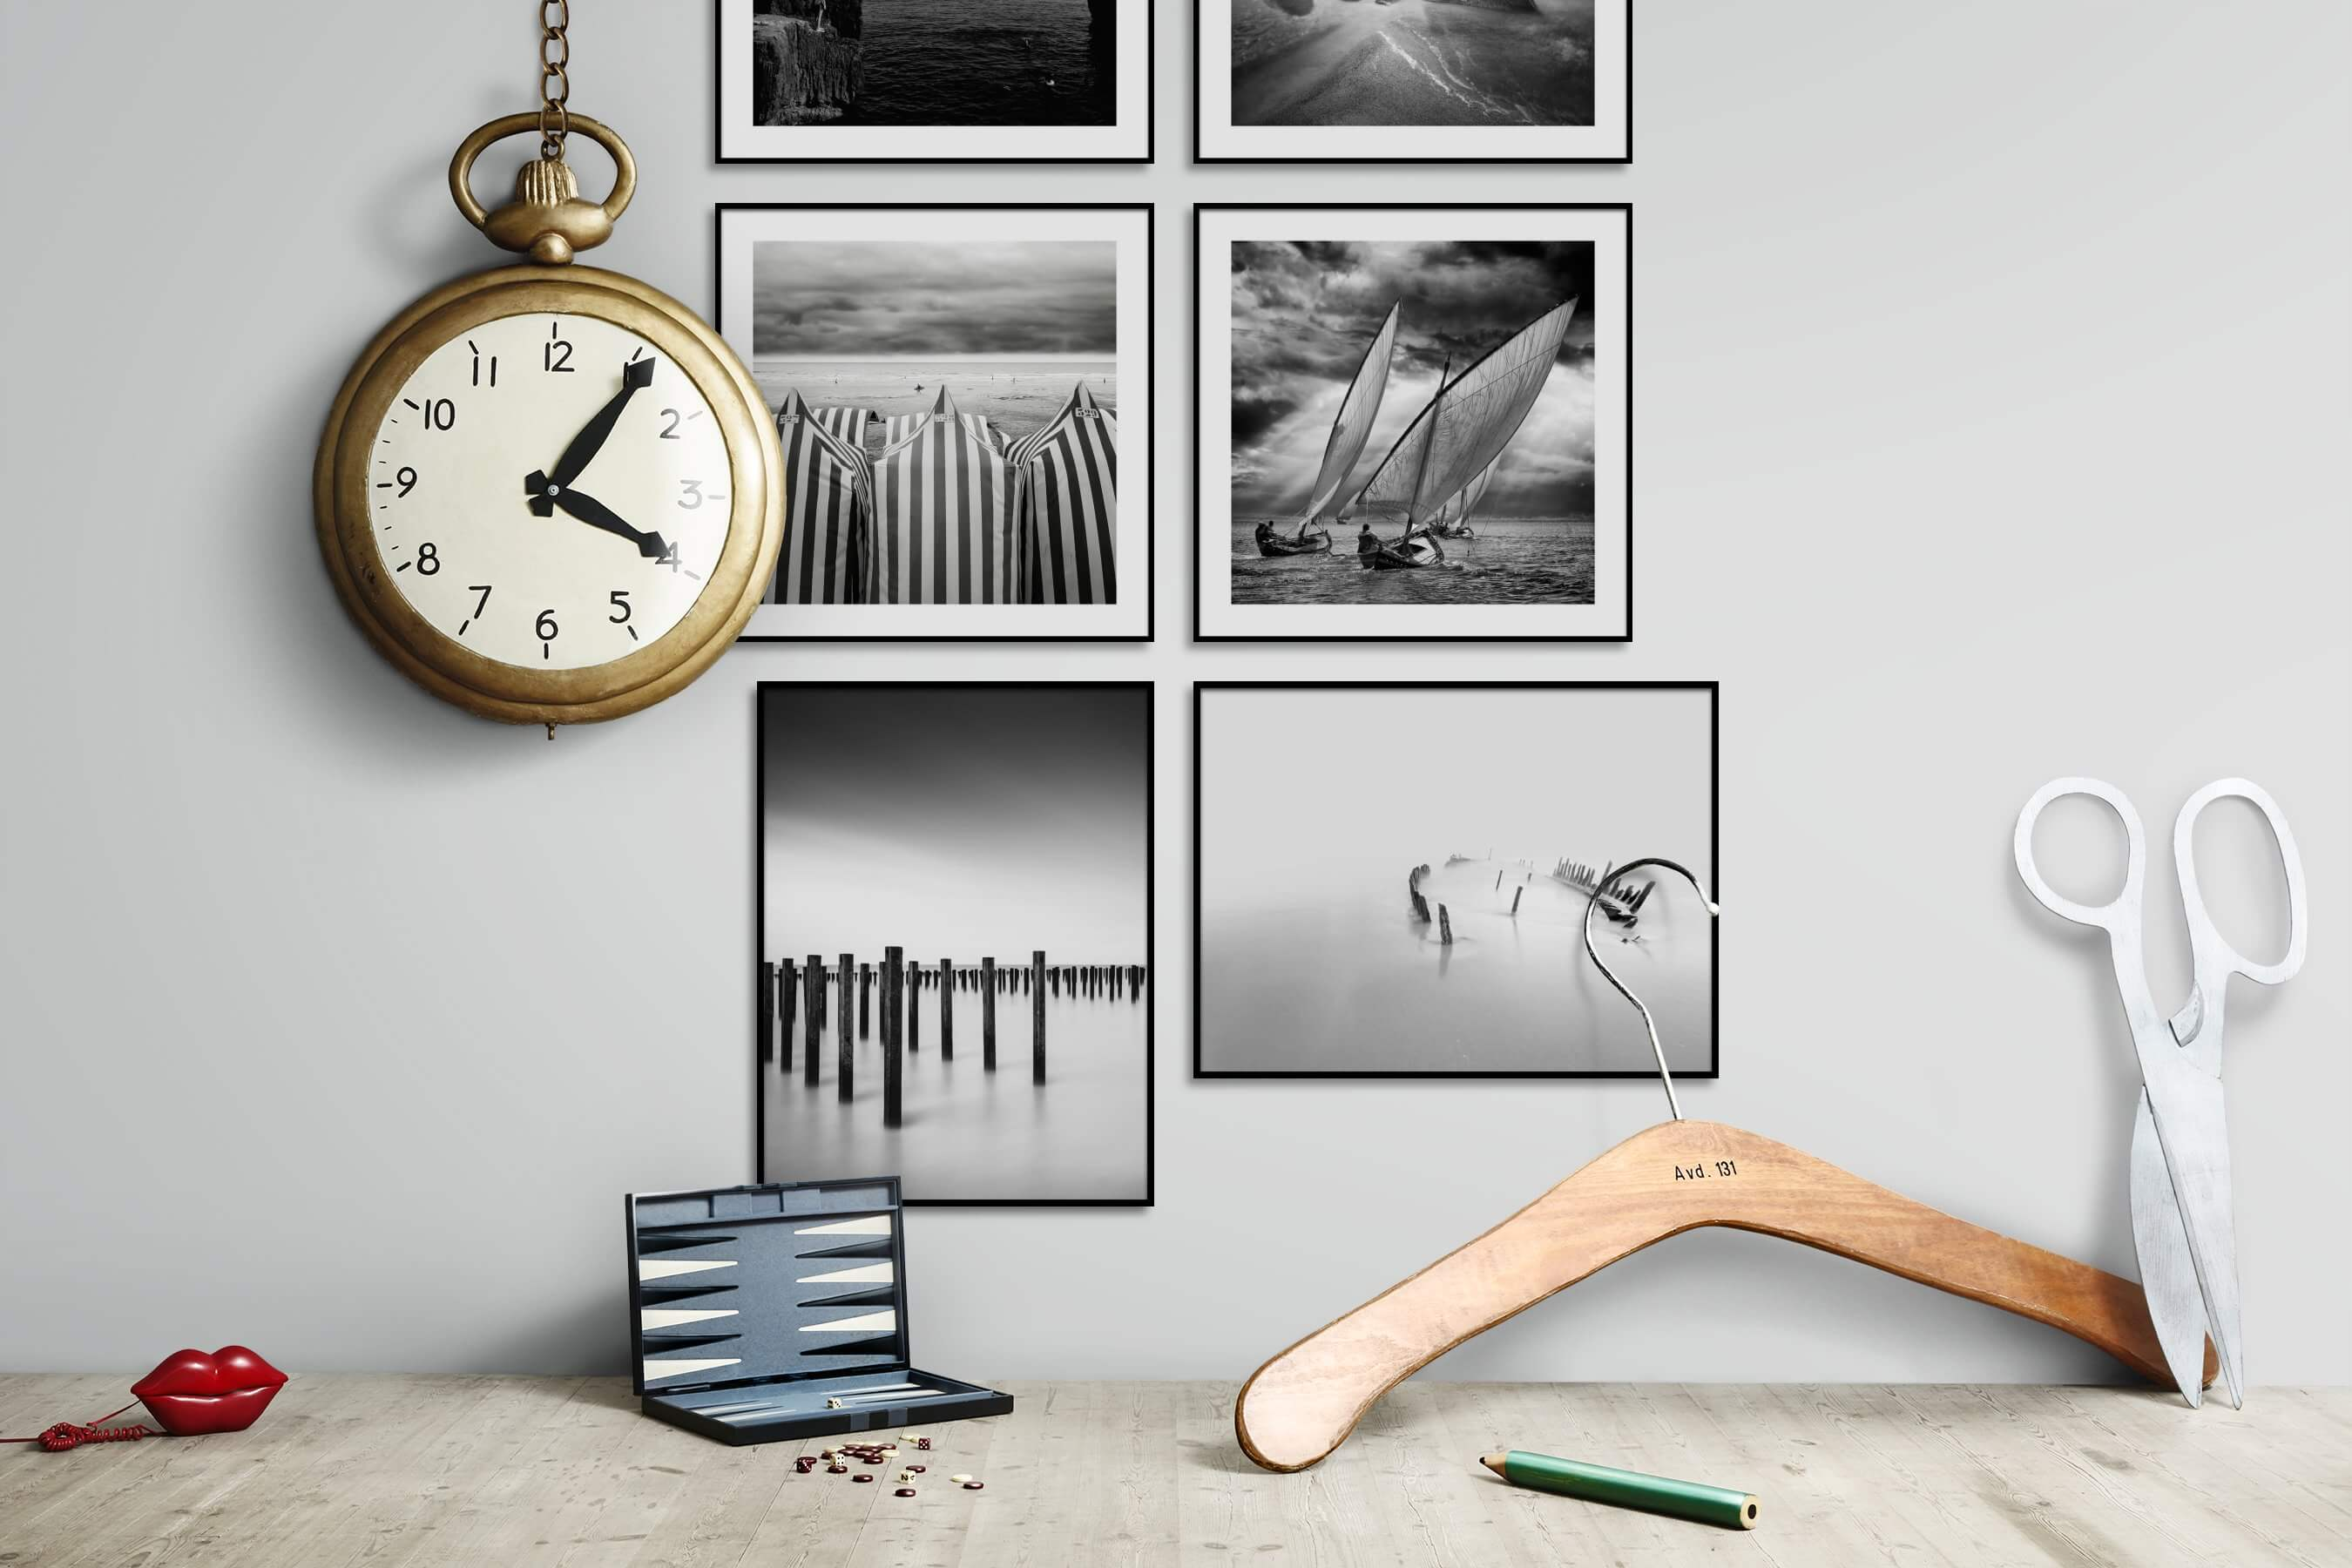 Gallery wall idea with six framed pictures arranged on a wall depicting Black & White, Beach & Water, Mindfulness, For the Moderate, and For the Minimalist